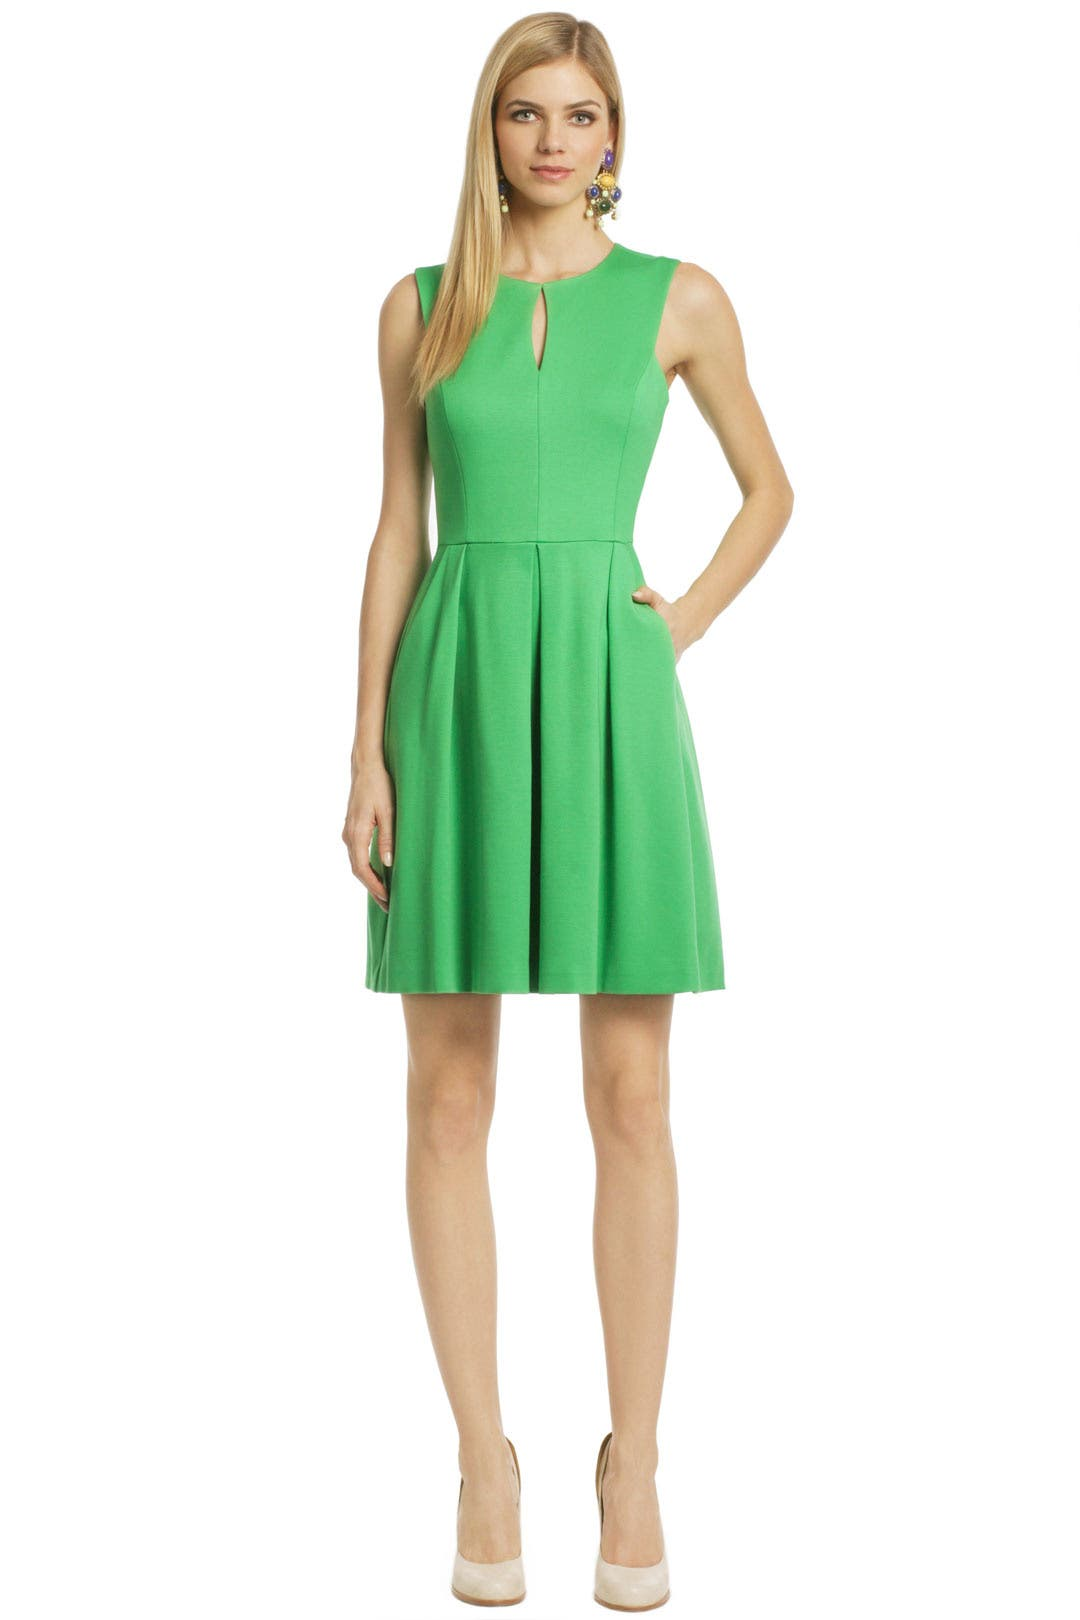 Kelly To My Green Dress by Trina Turk